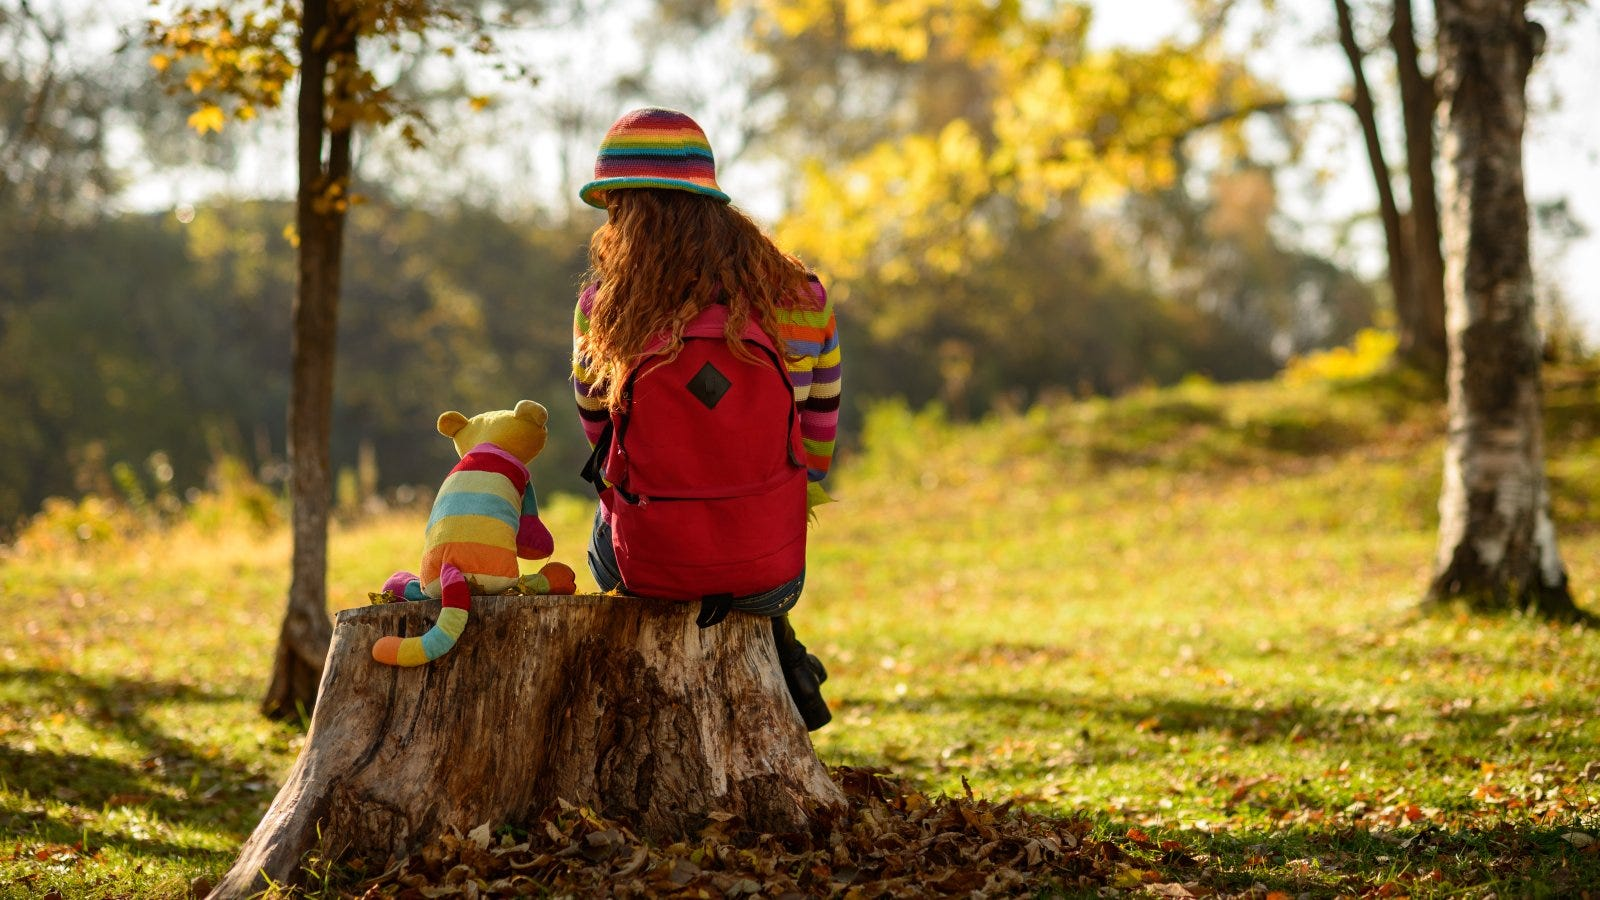 young redhead girl sitting on stump with her toy cat